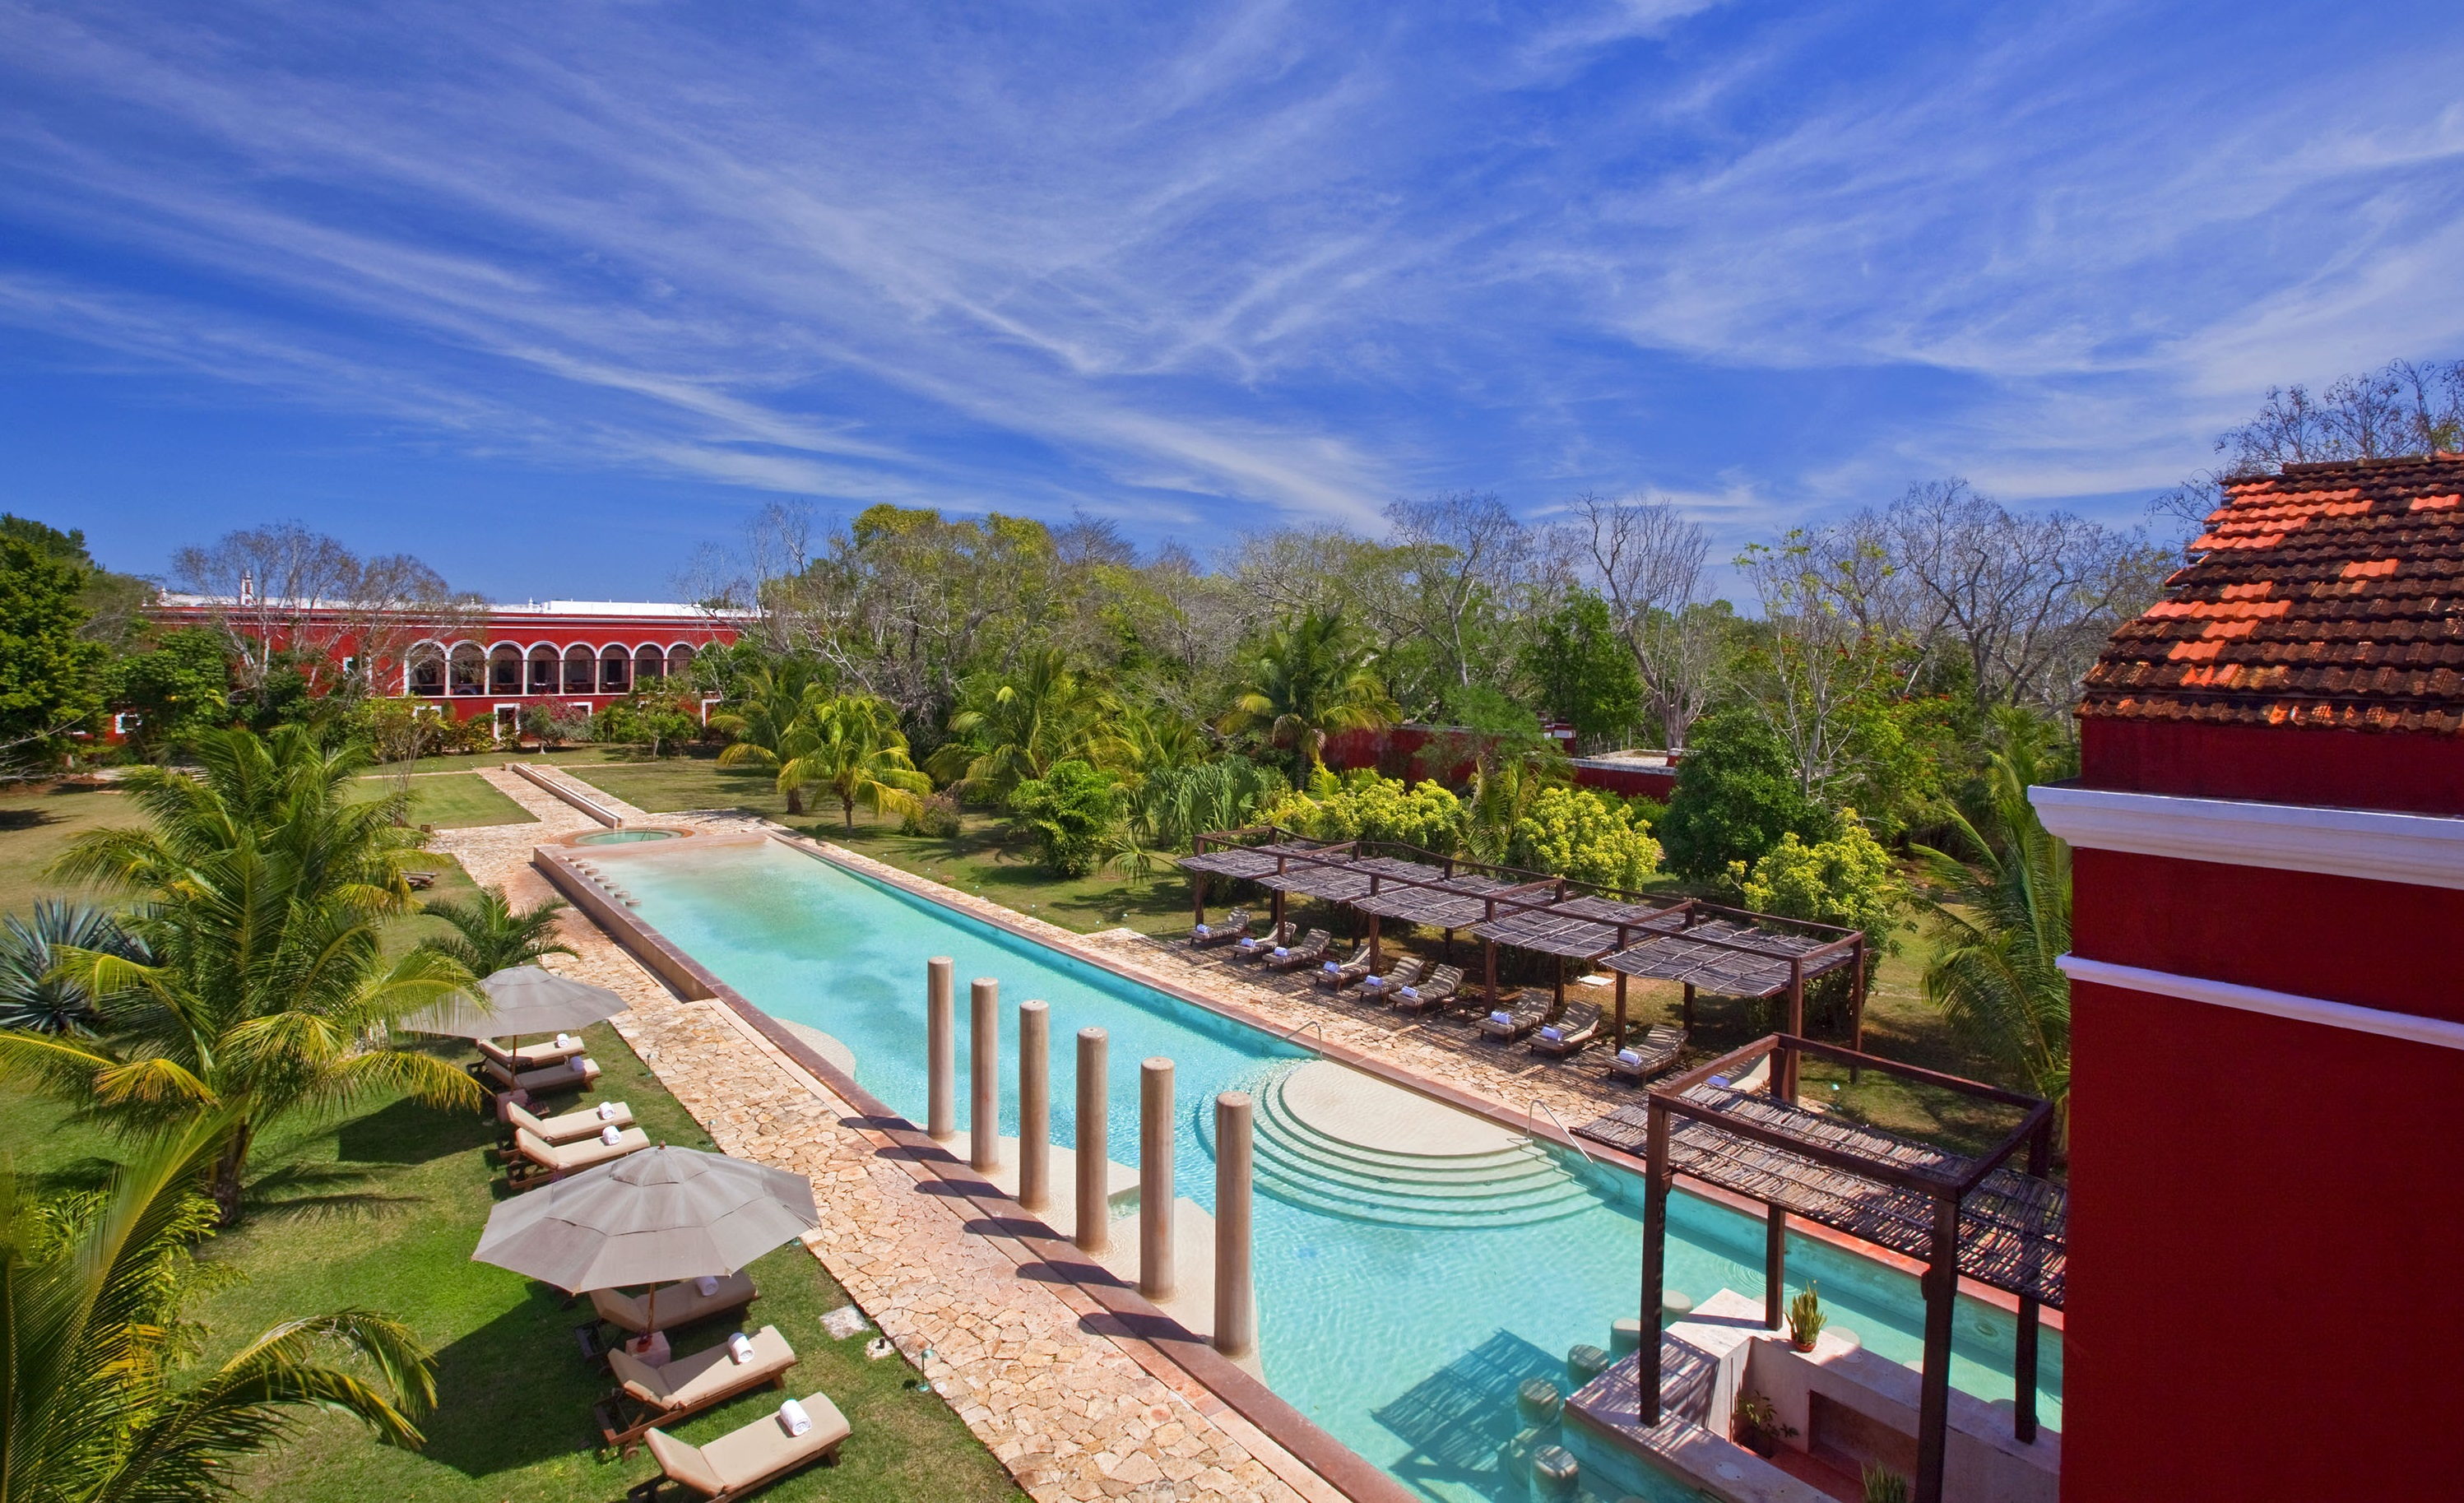 Discover the Spanish Colonial architecture of this vacation retreat.